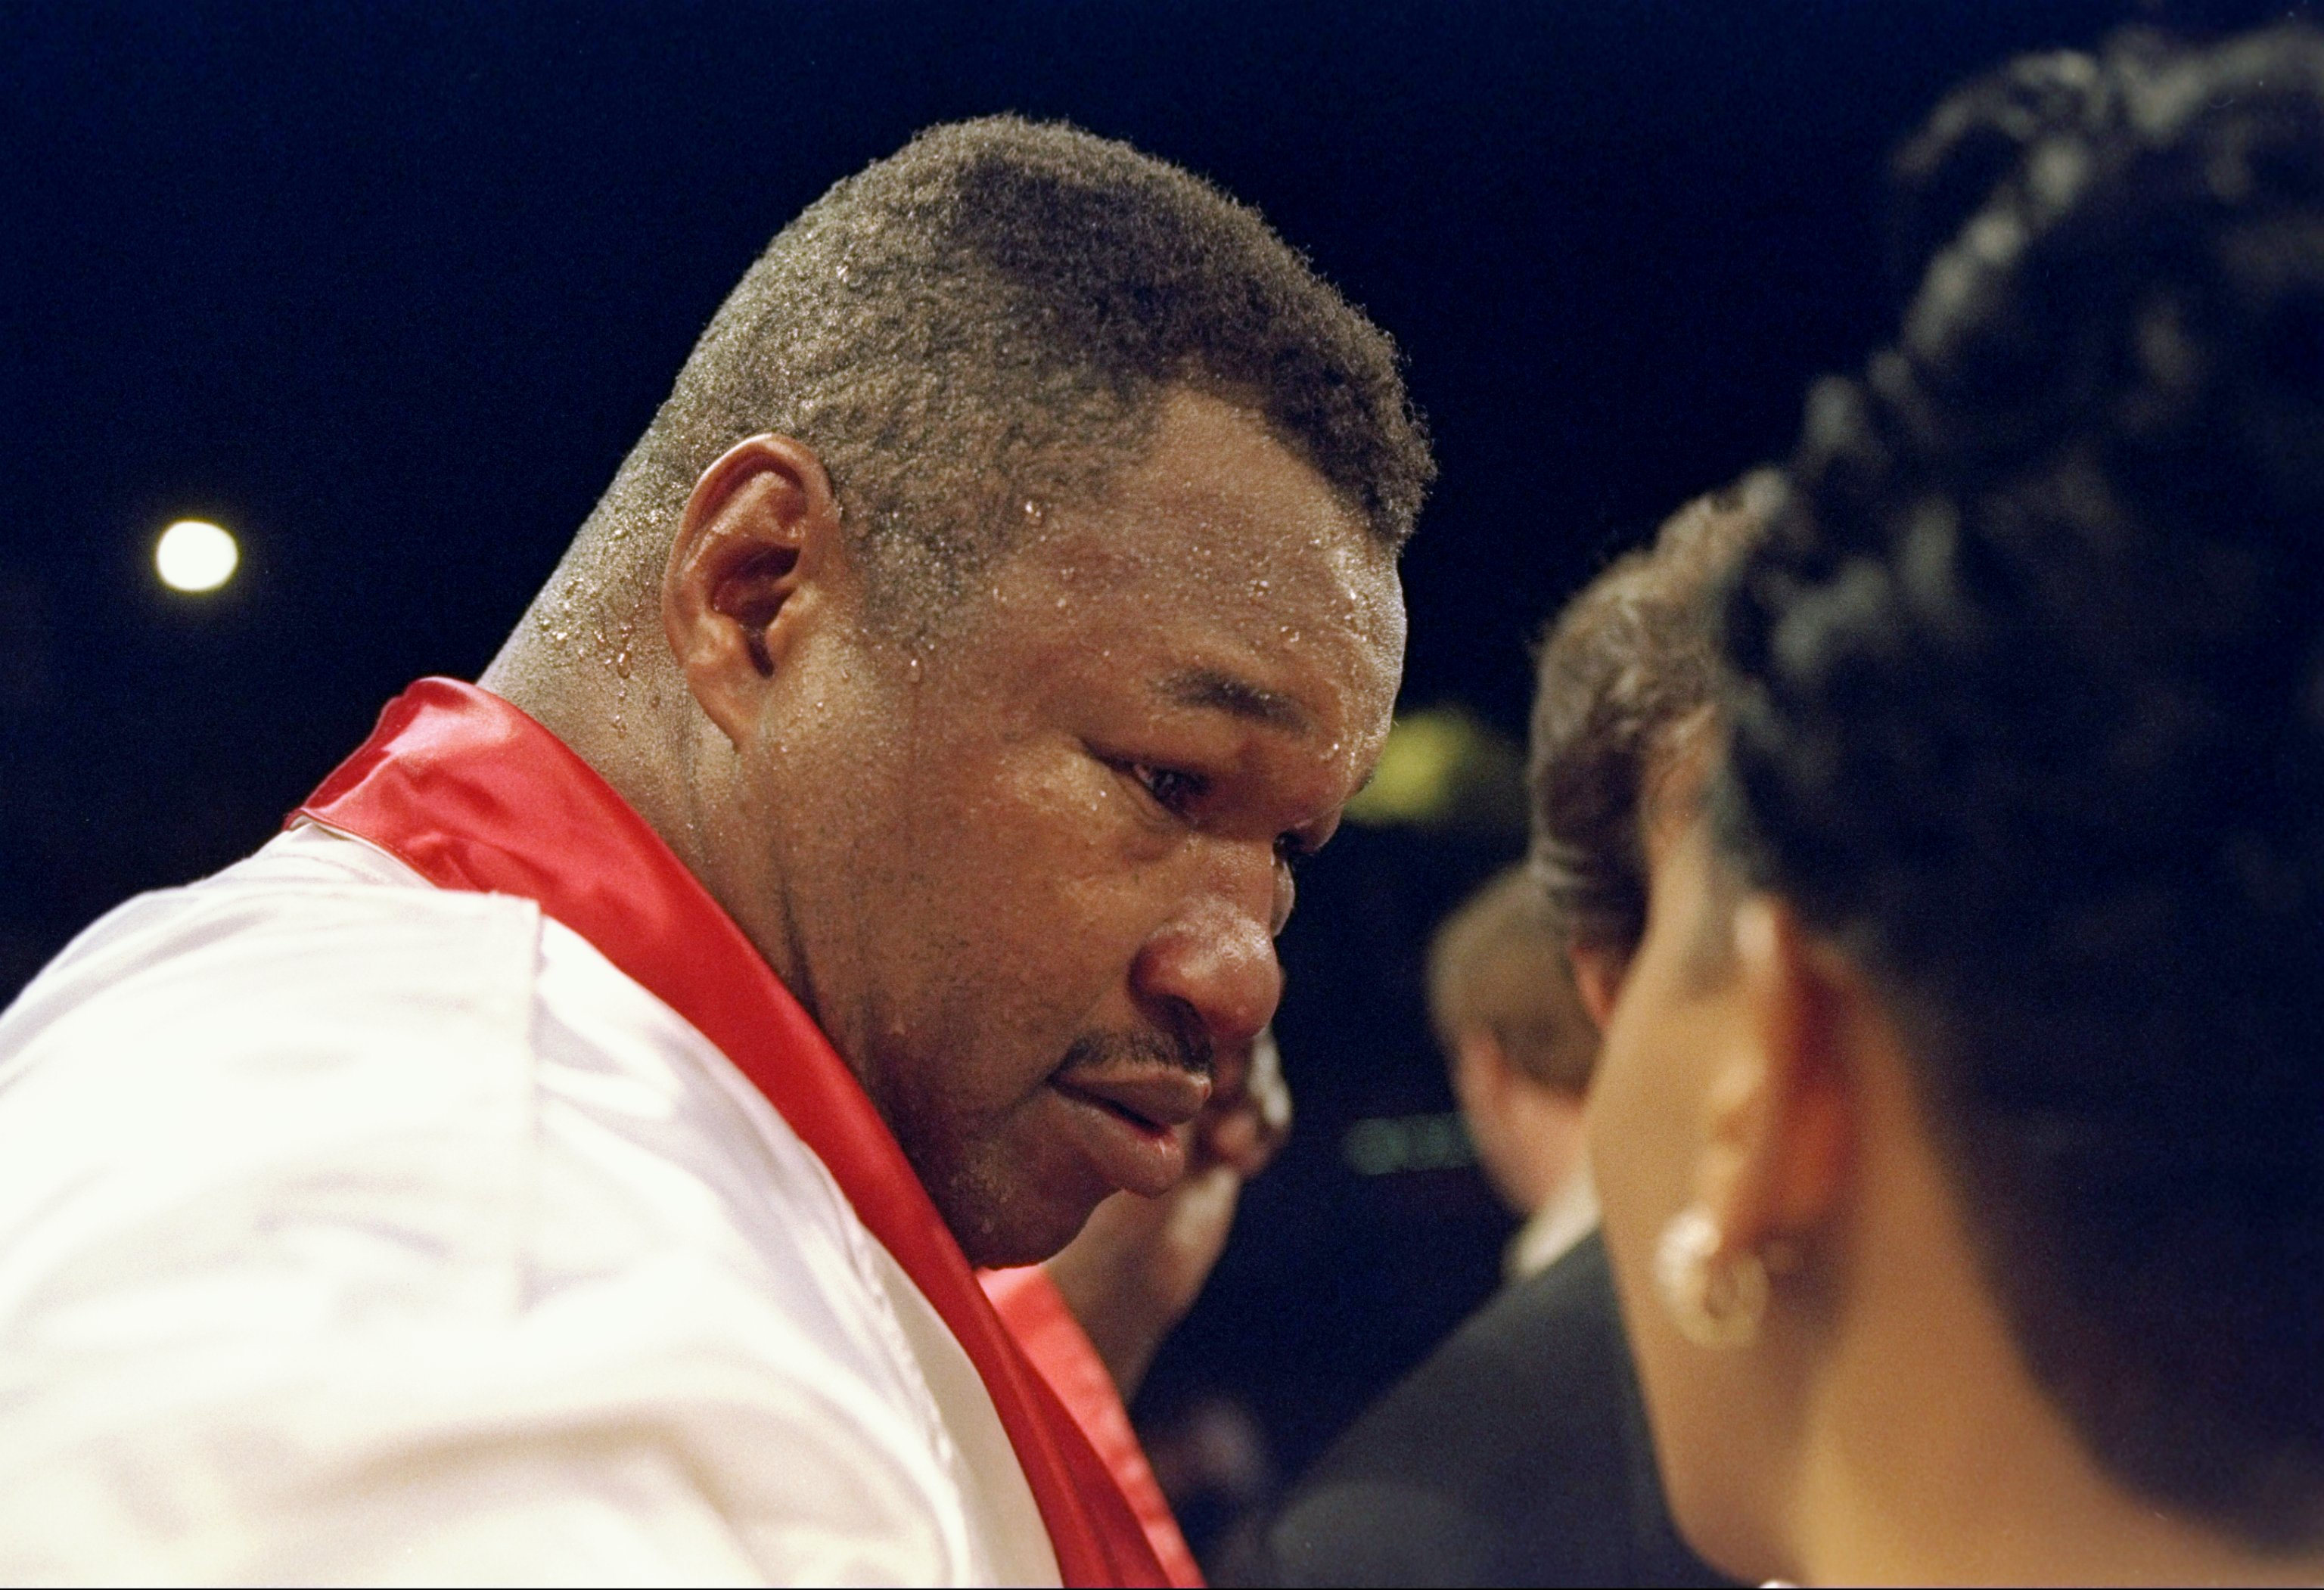 8 Apr 1995: Larry Holmes (right) looks on during his fight against Oliver McCall in Las Vegas, Nevada. McCall won the bout with an unanimous decision after 12 rounds.